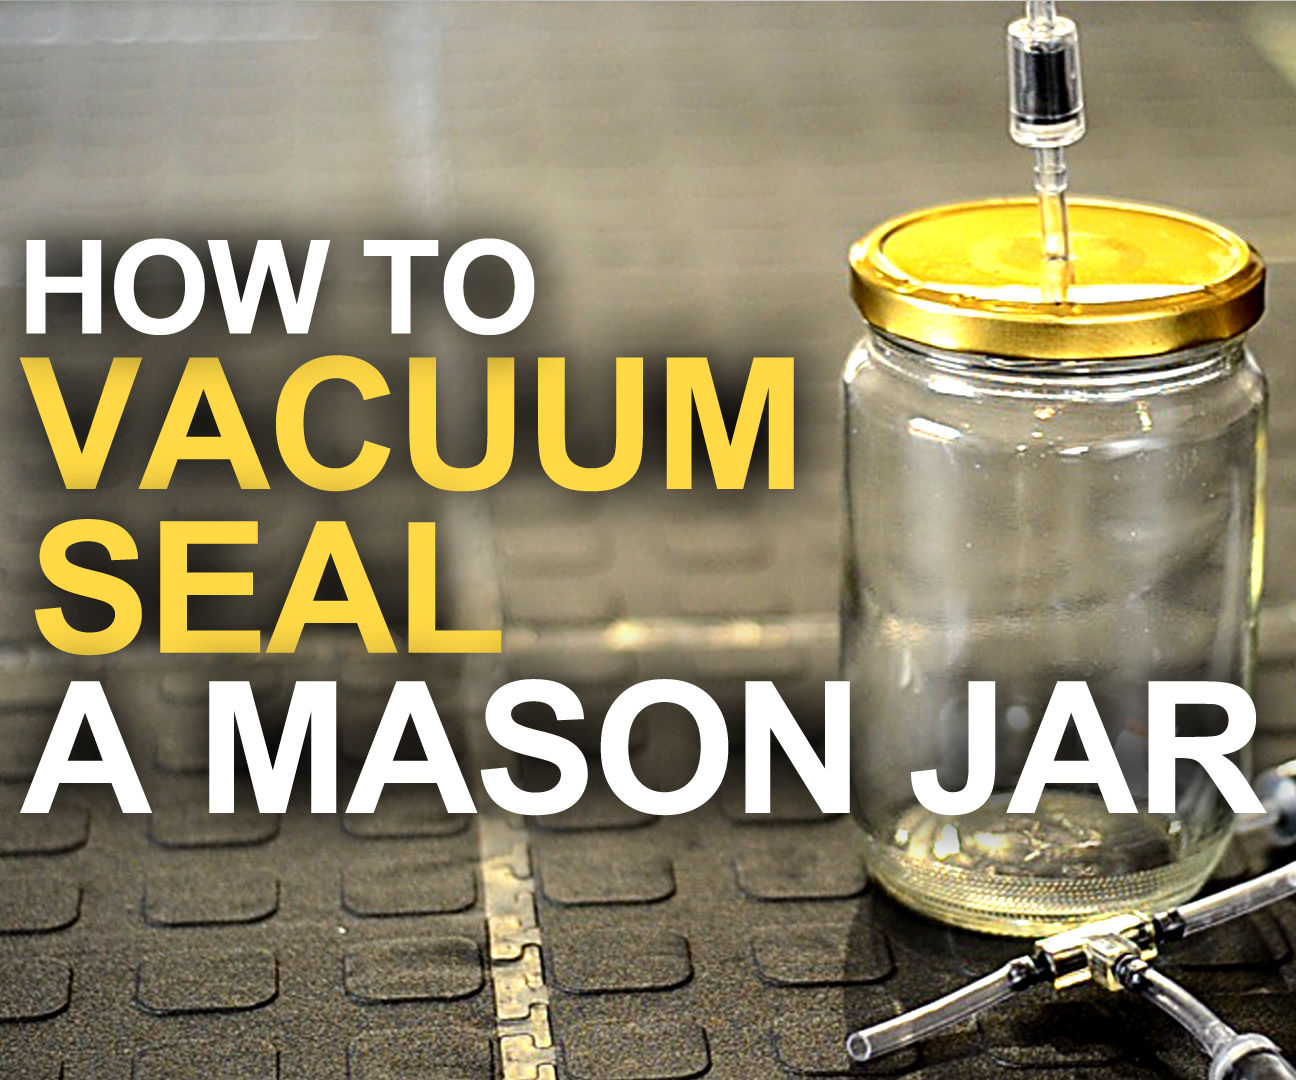 How to Vacuum Seal a Mason Jar: 10 Steps (with Pictures)